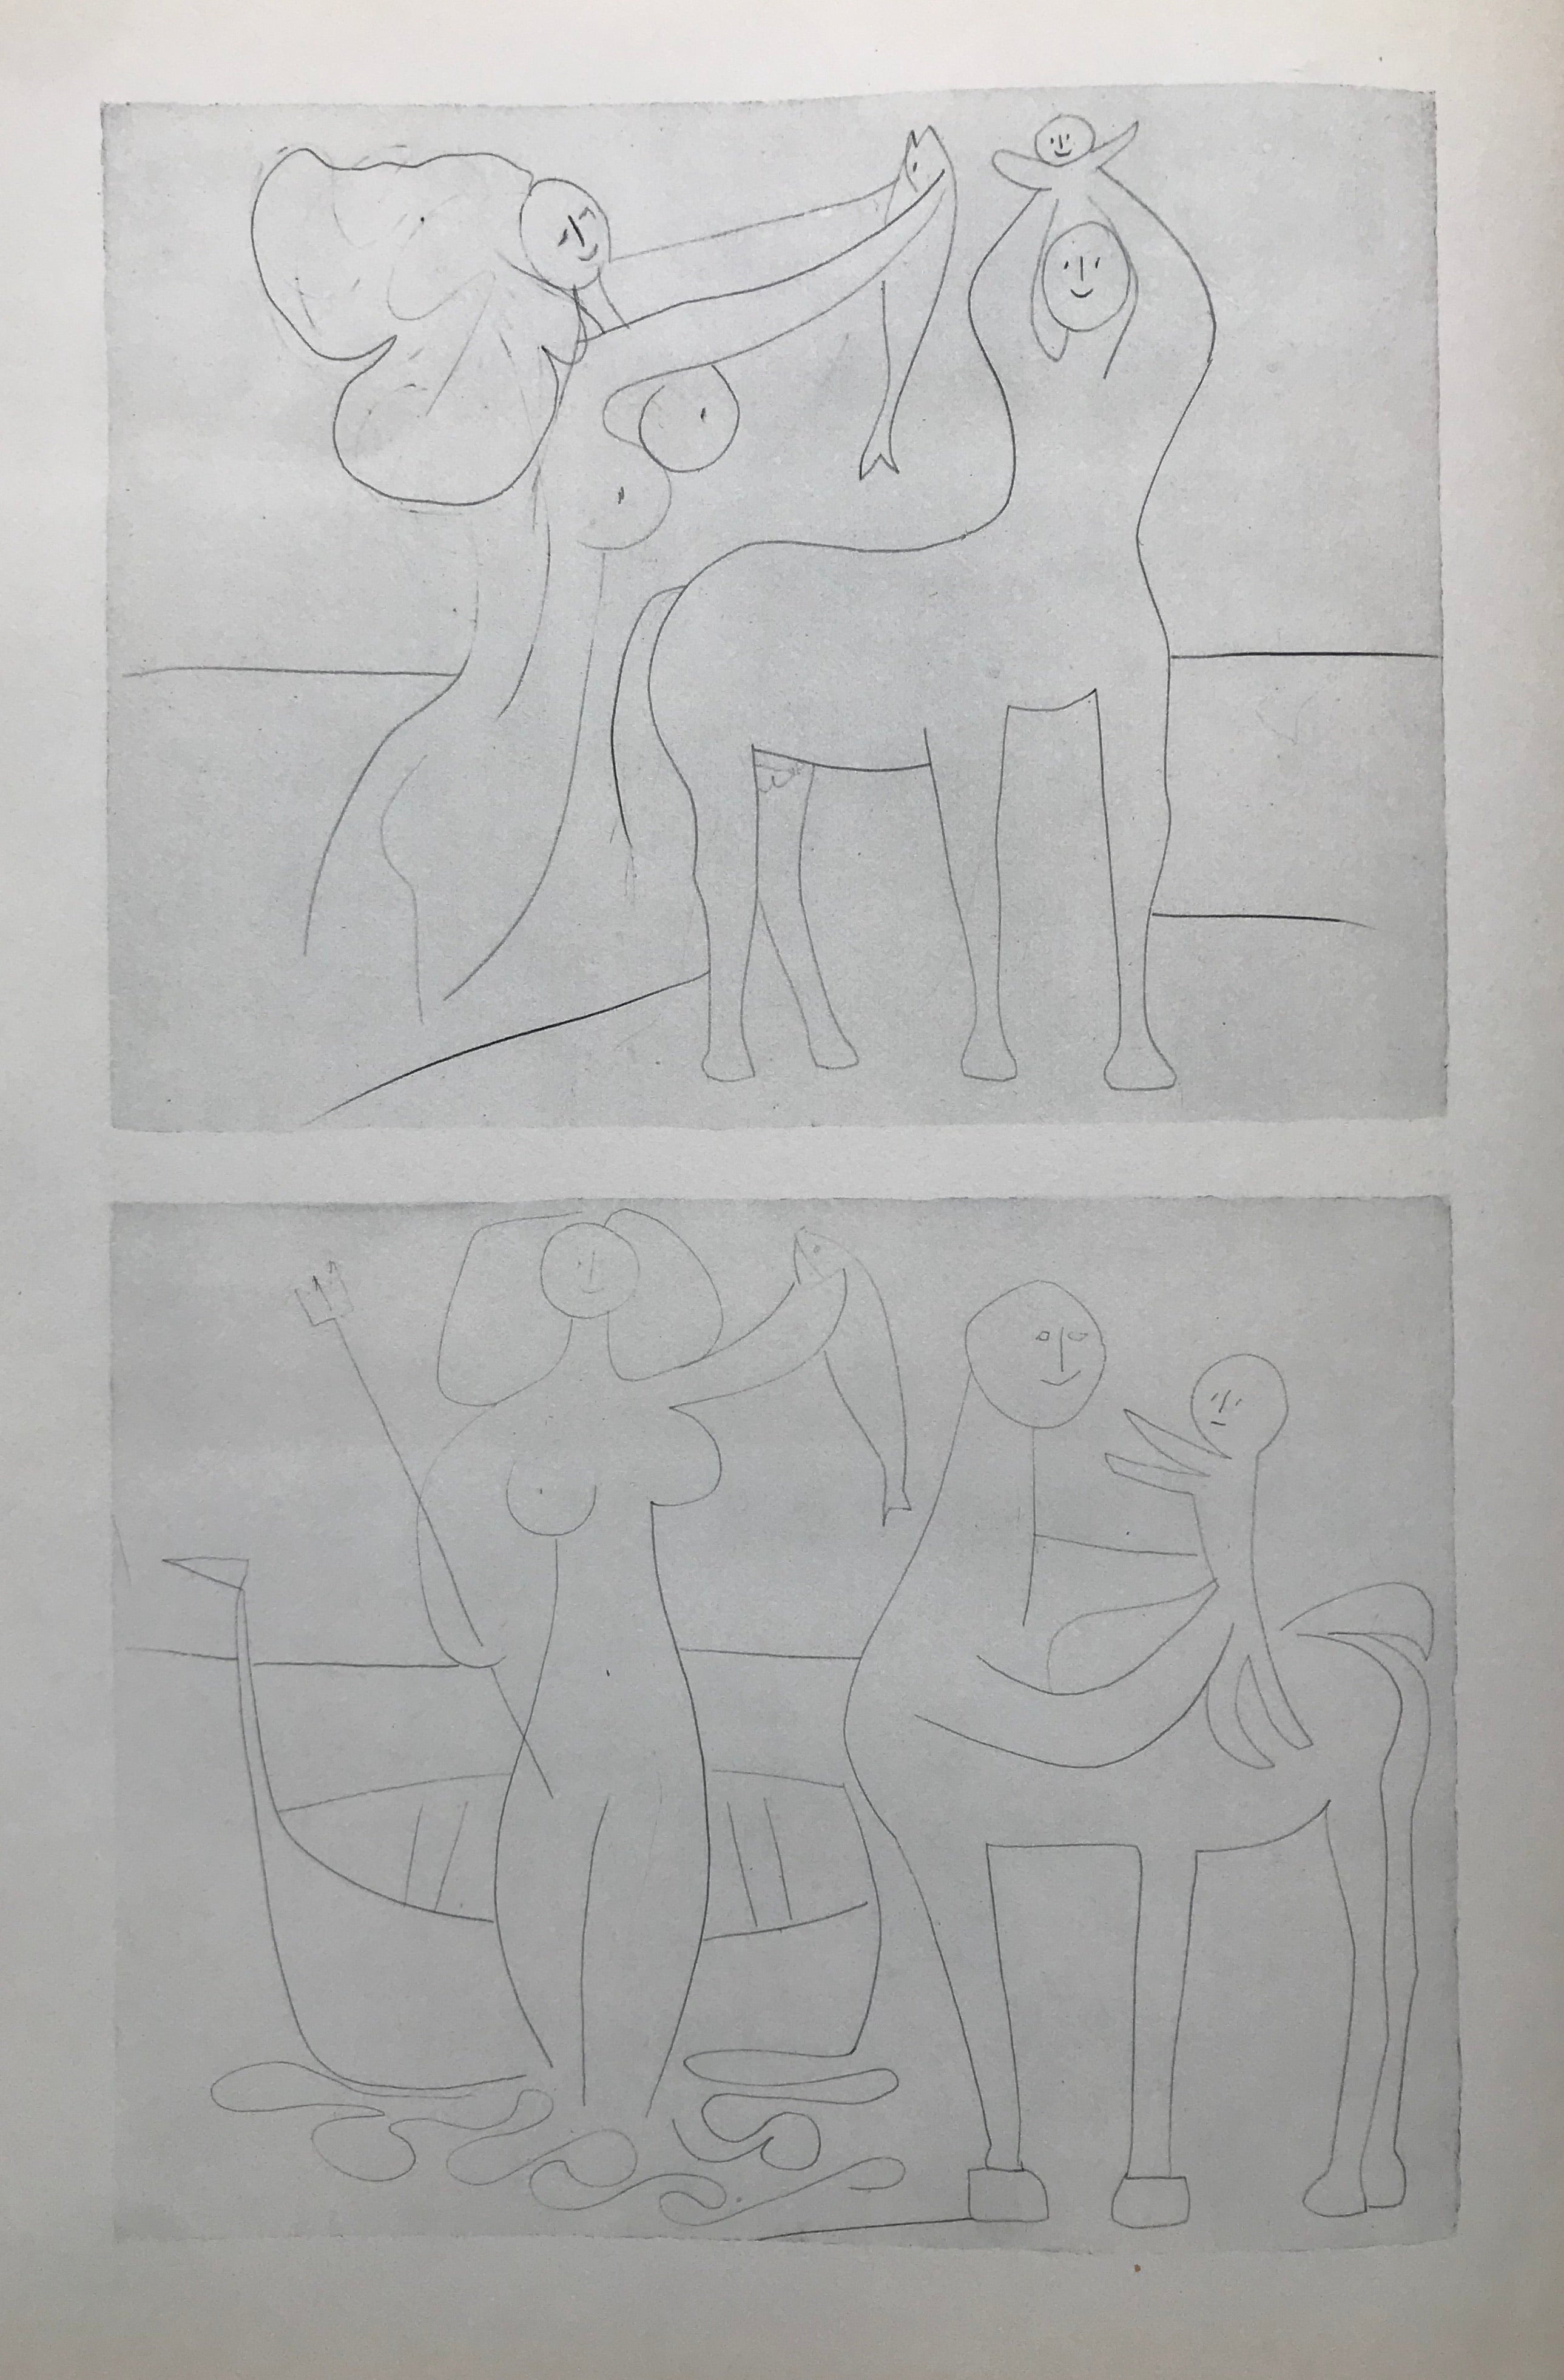 Mythic and Idyllic Family Images by Pablo Picasso